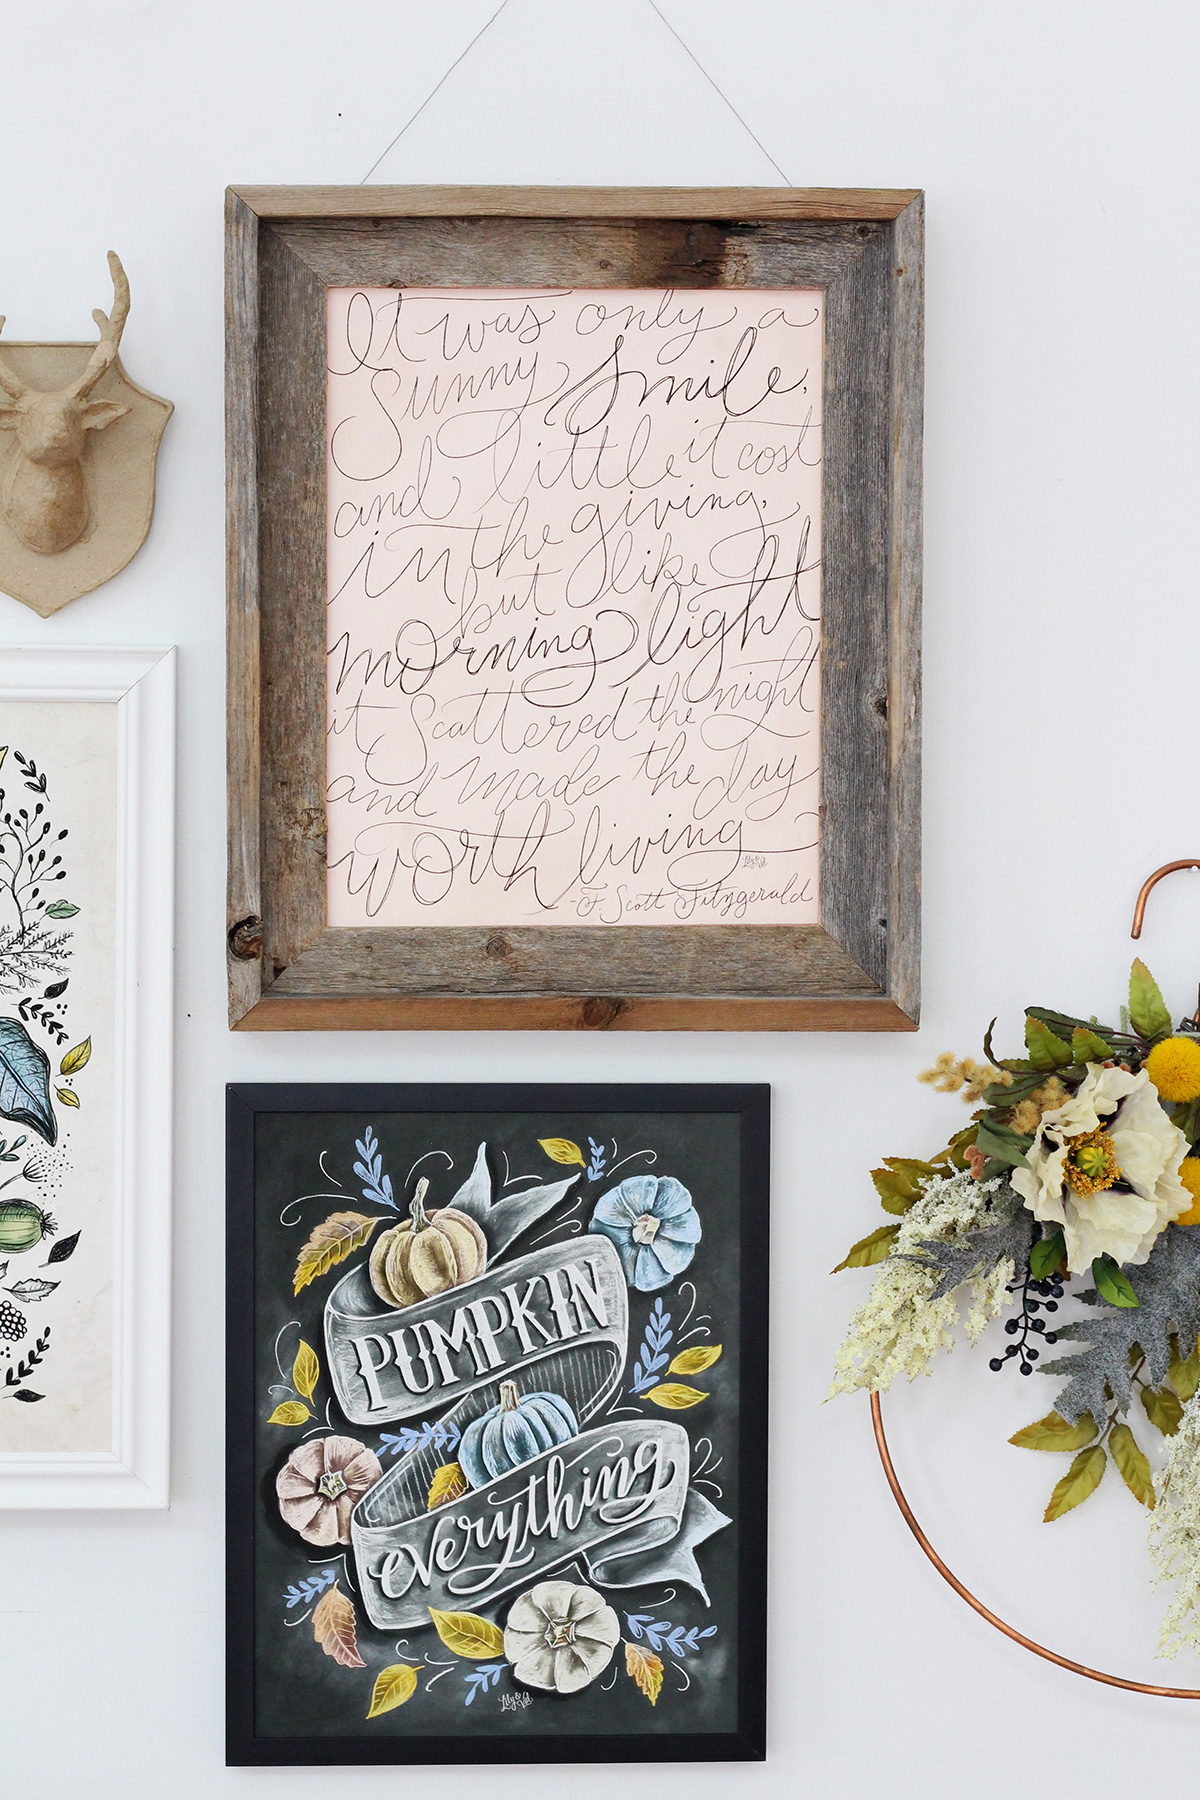 Gallery wall inspiration for elegant, non-traditional fall decor